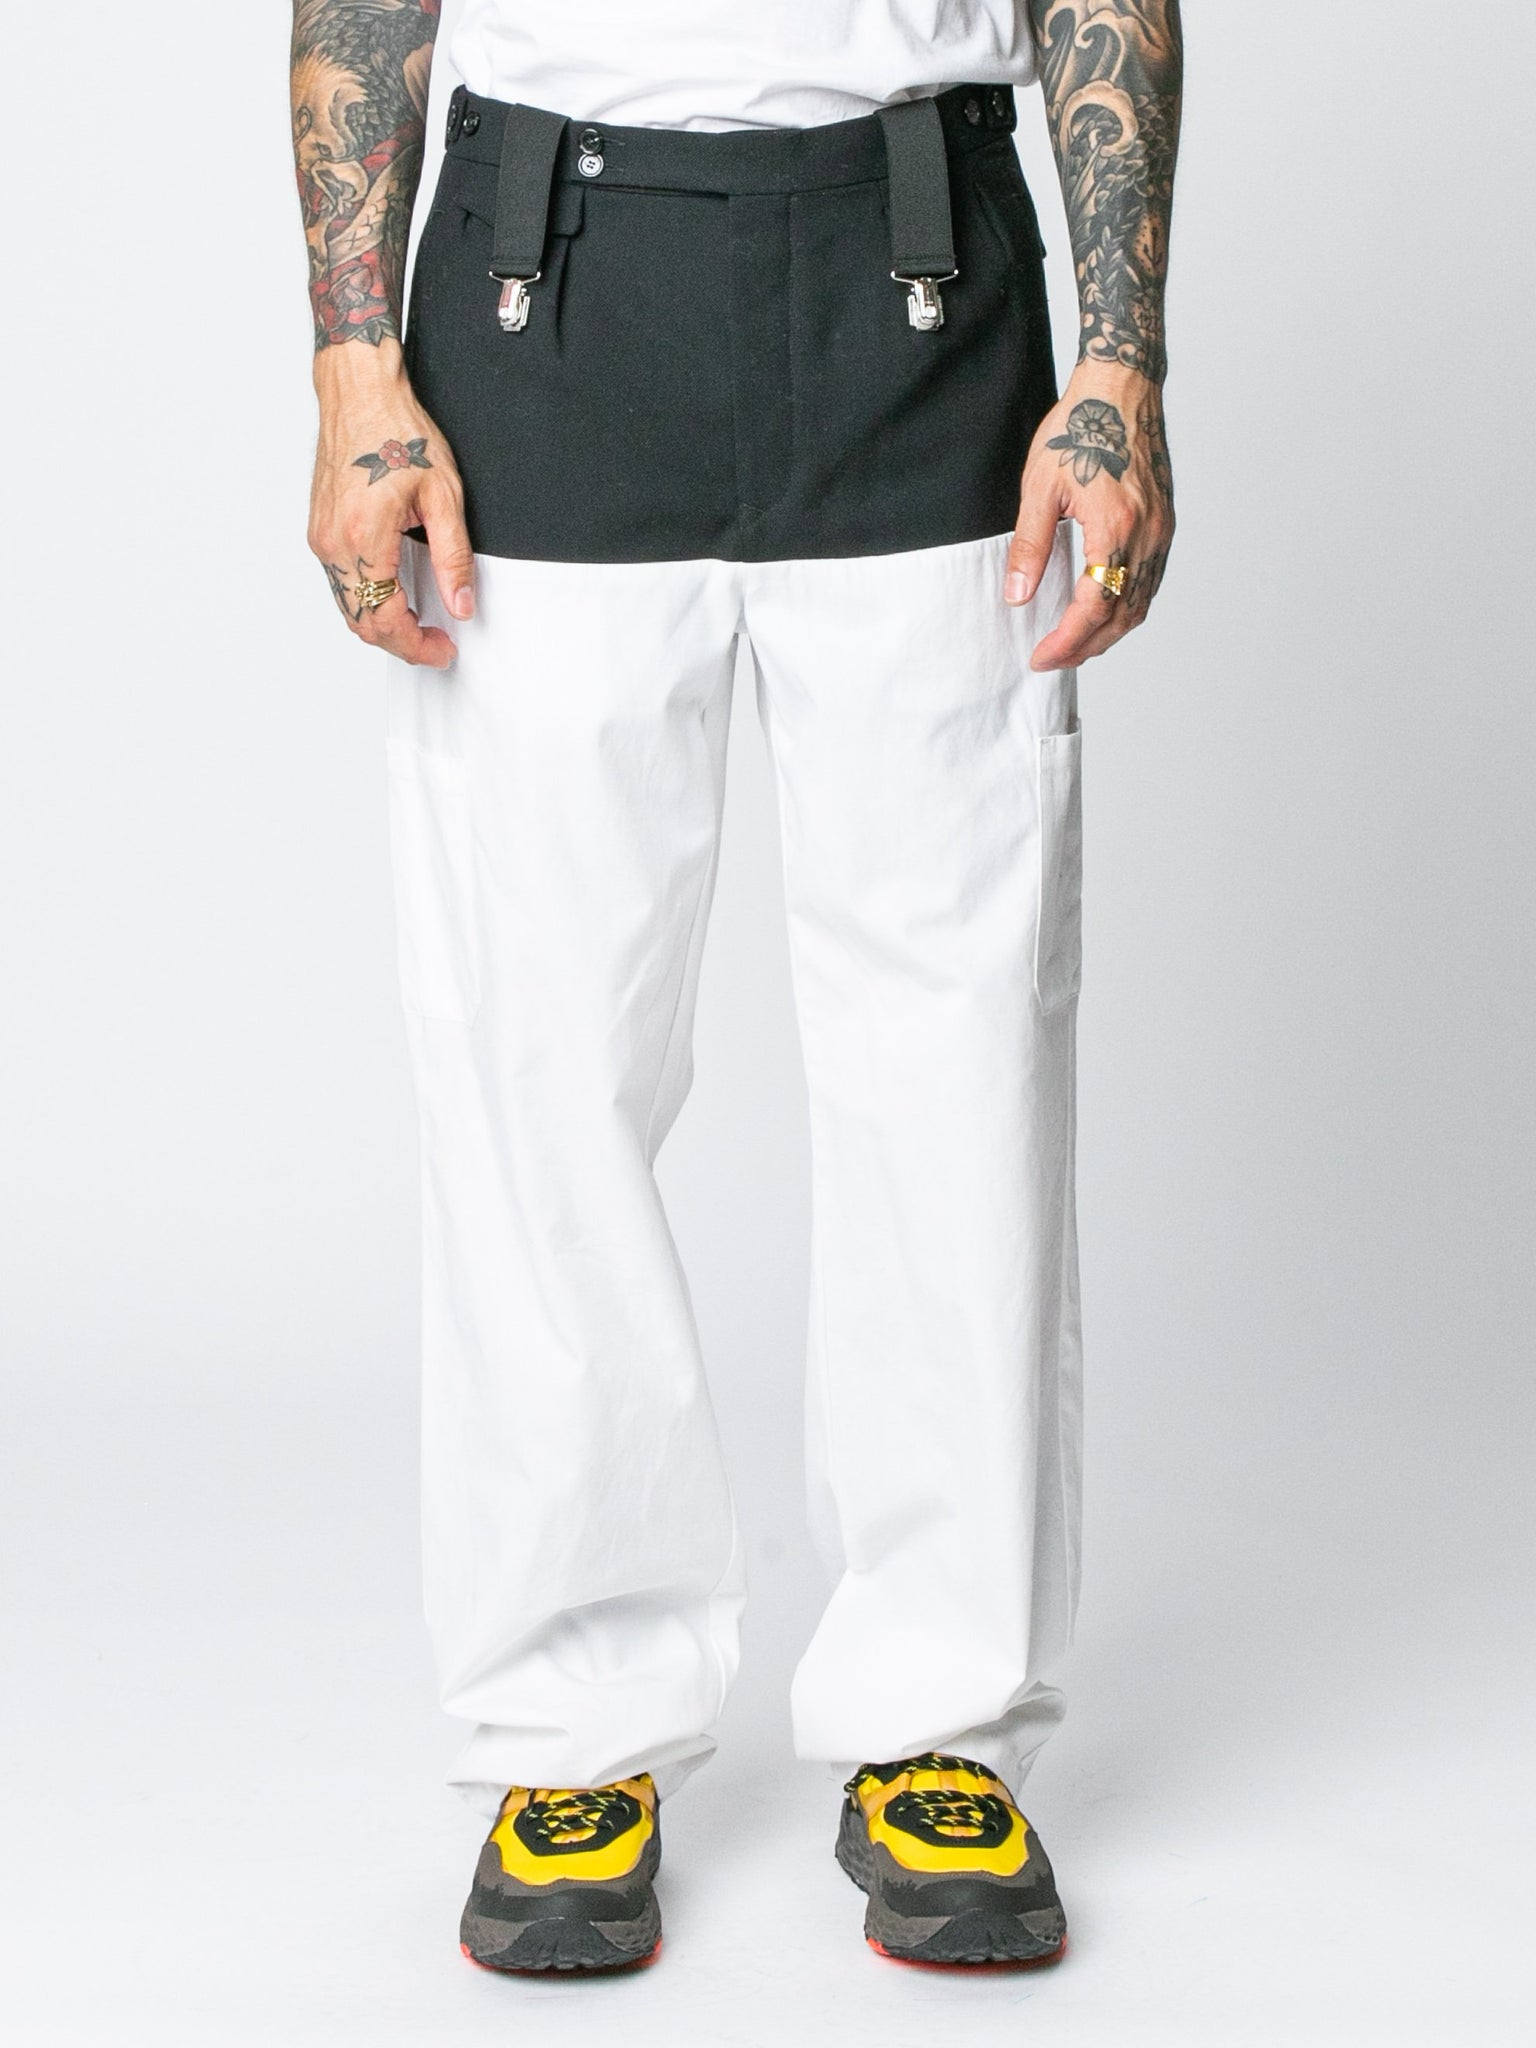 pants-with-horizontal-cut-pockets-suspenders